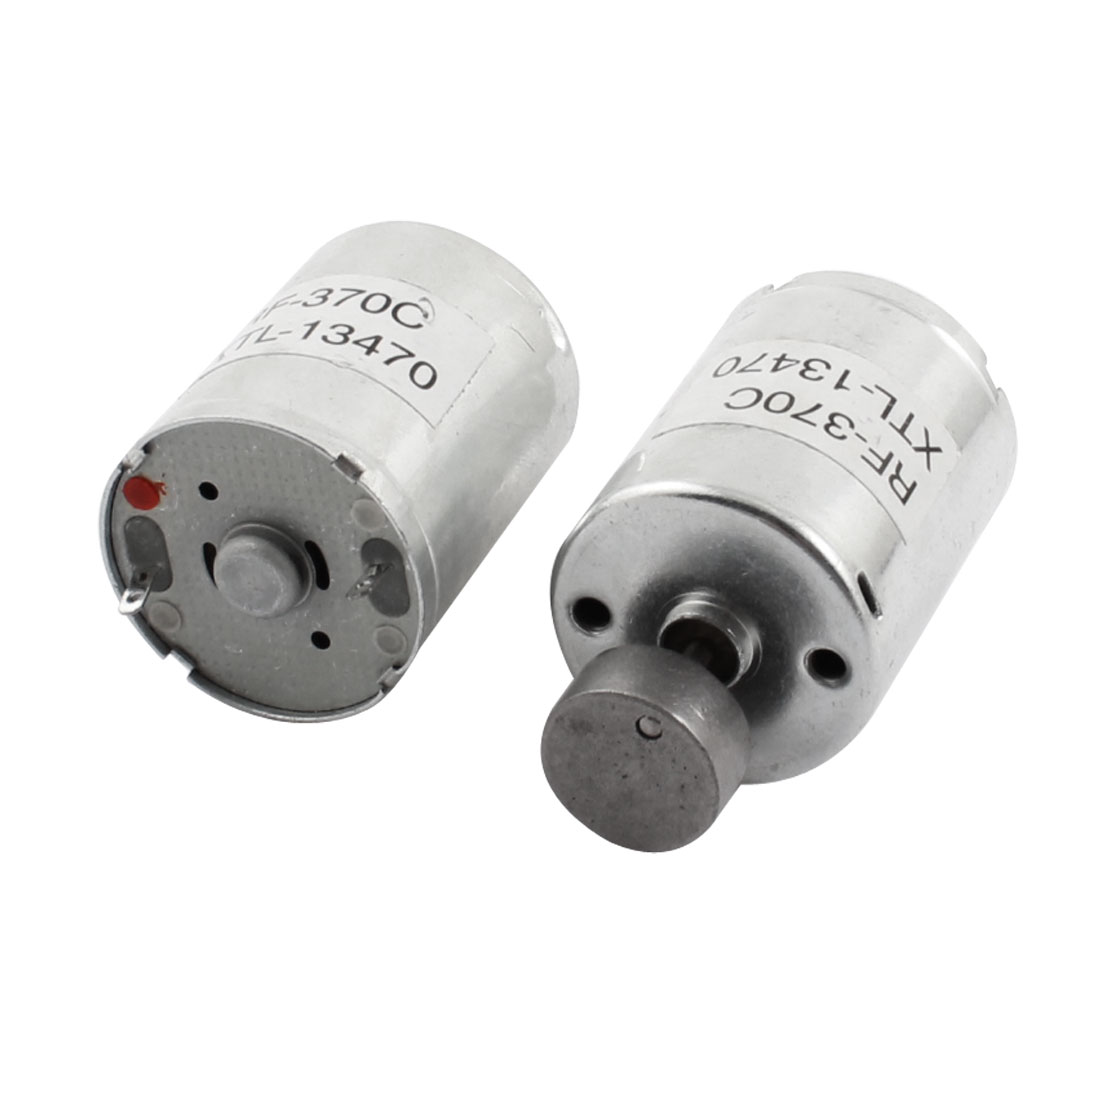 2PCS RF-370C 4300RPM High Speed DC 6V-9V Micro Vibration Motor Replacement